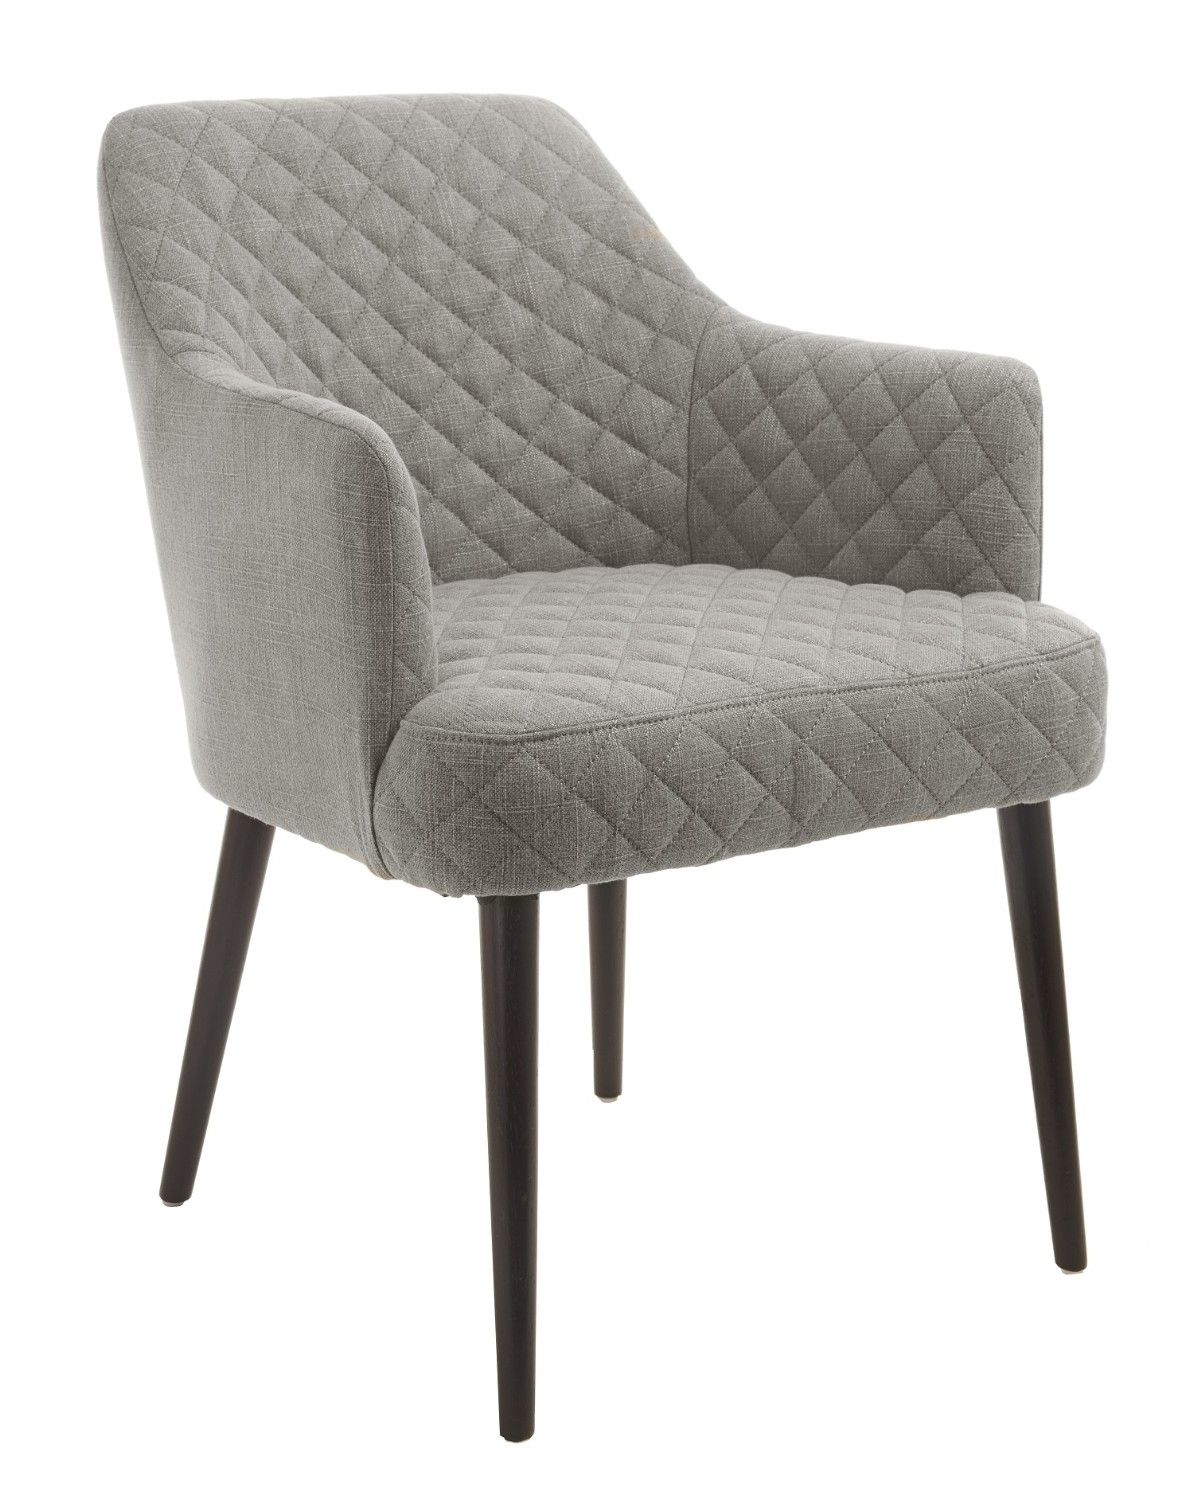 Seating Armchairs Kirk Occasional Chair Rv Astley Grey